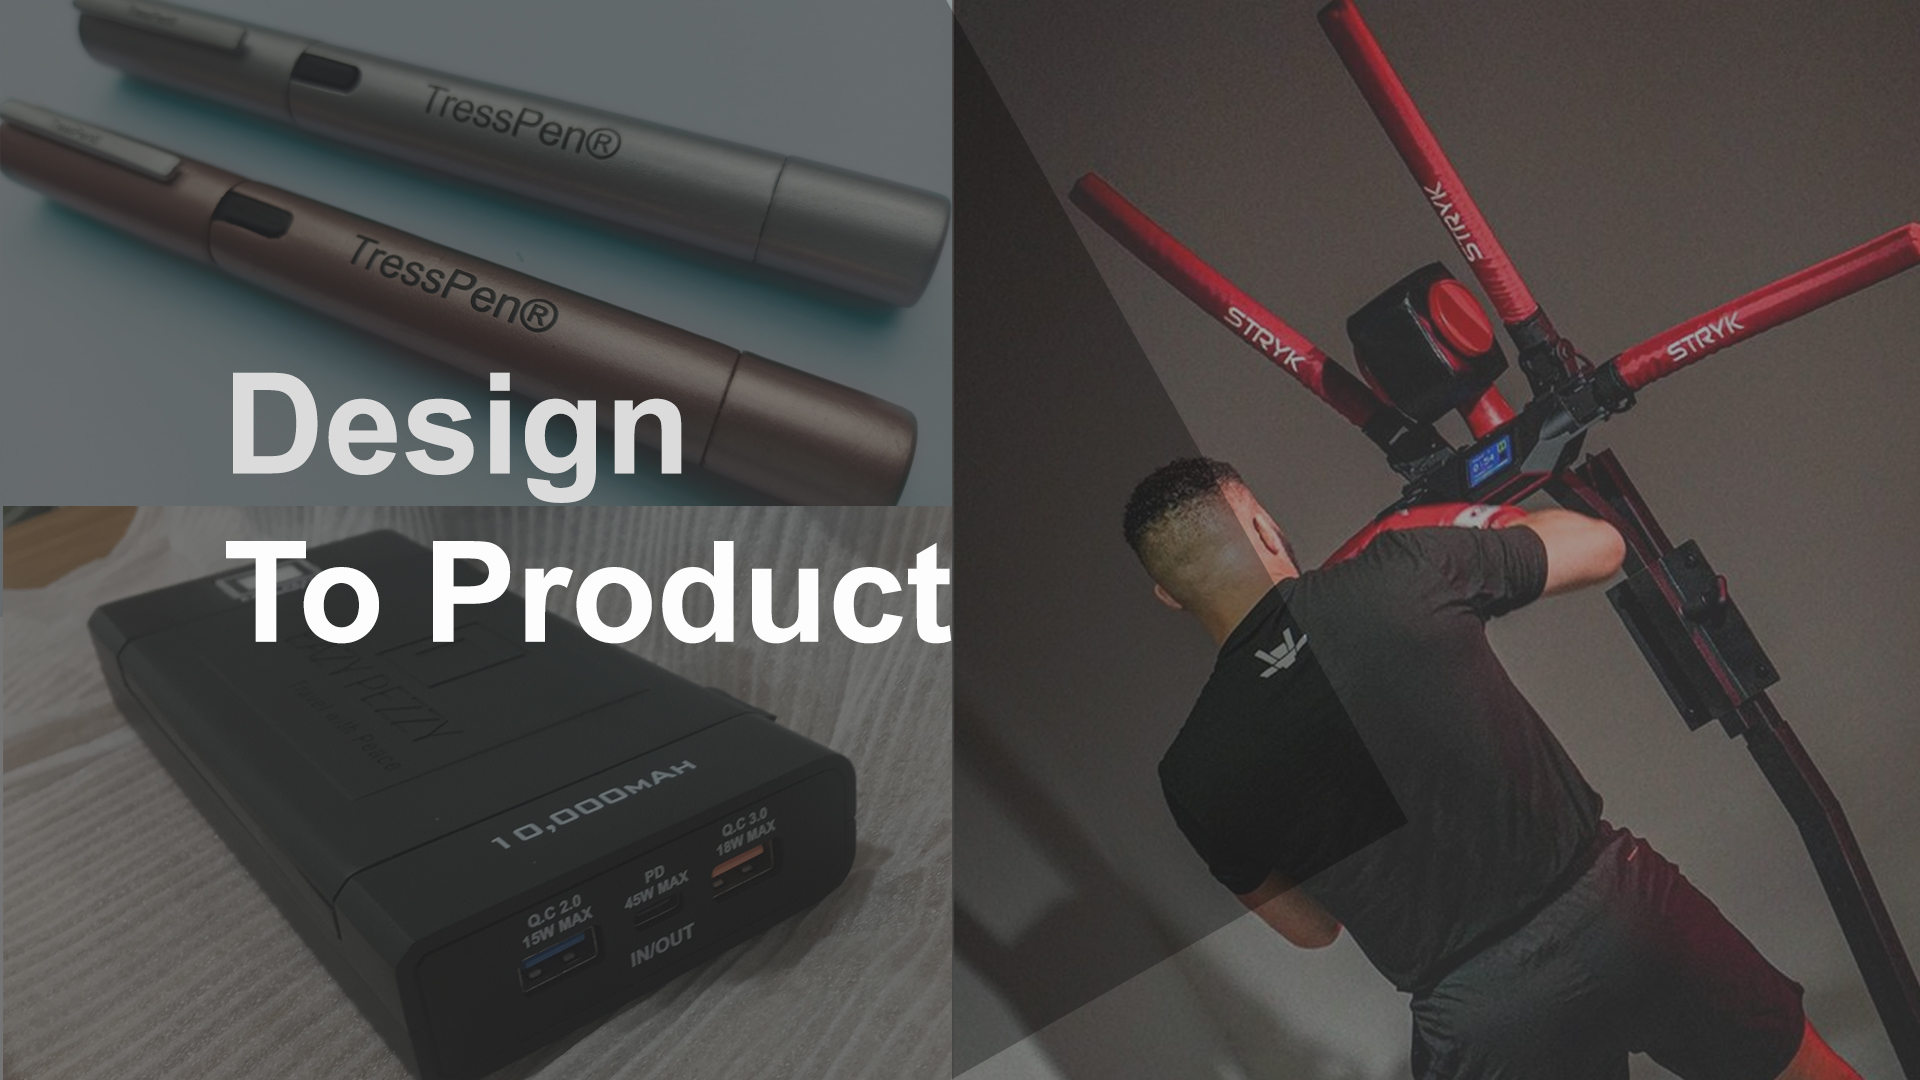 Design To Product